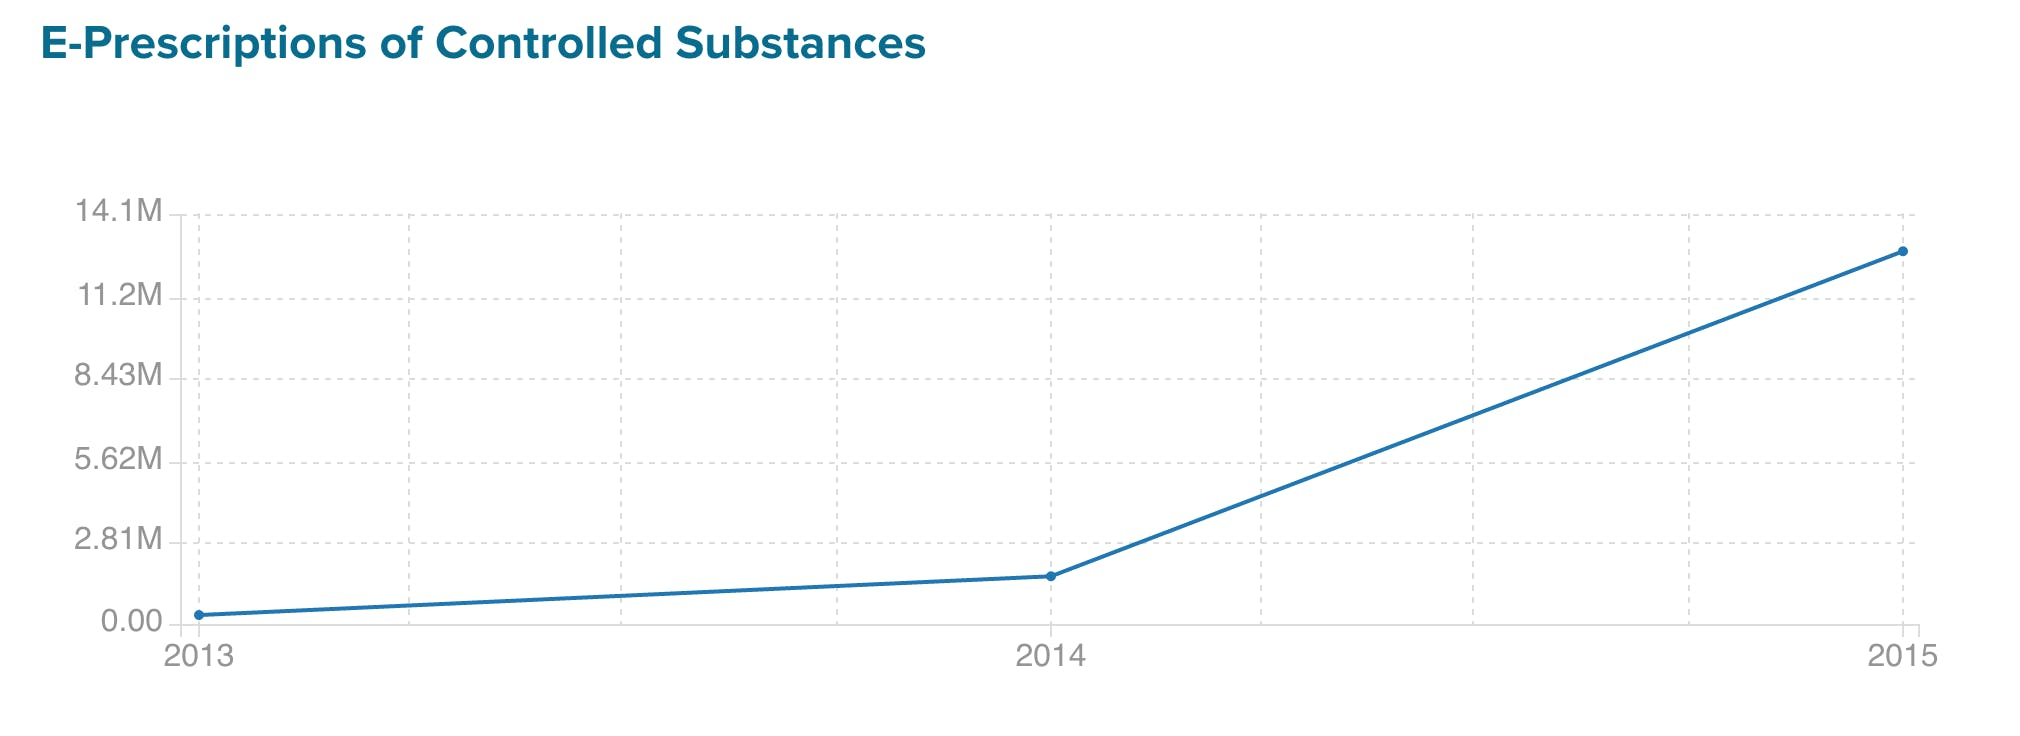 E-prescriptions of controlled substances have steadily risen over recent years